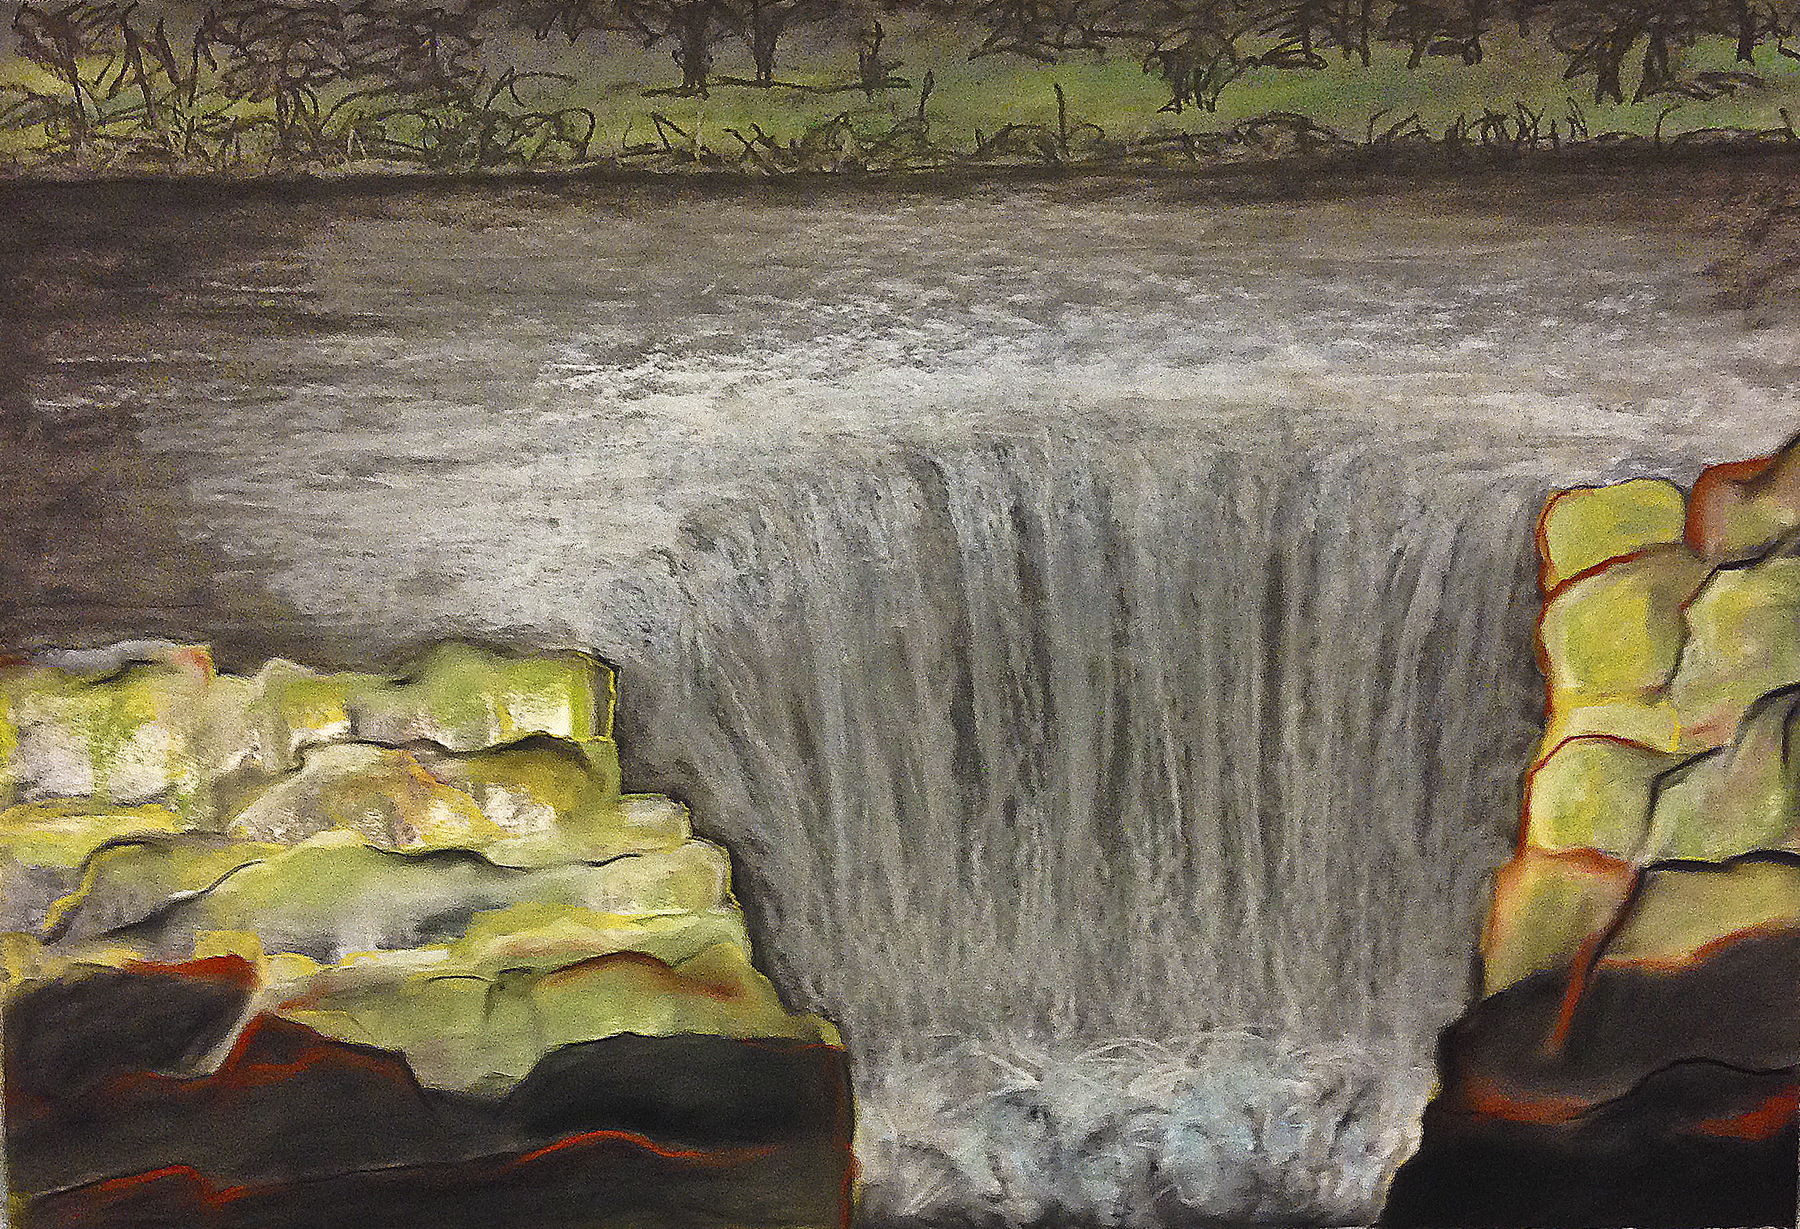 Scout K. Austin  and Kellie Weeks,  Untitled No. 28   pastel and charcoal, 44 x 30 in., $600.00